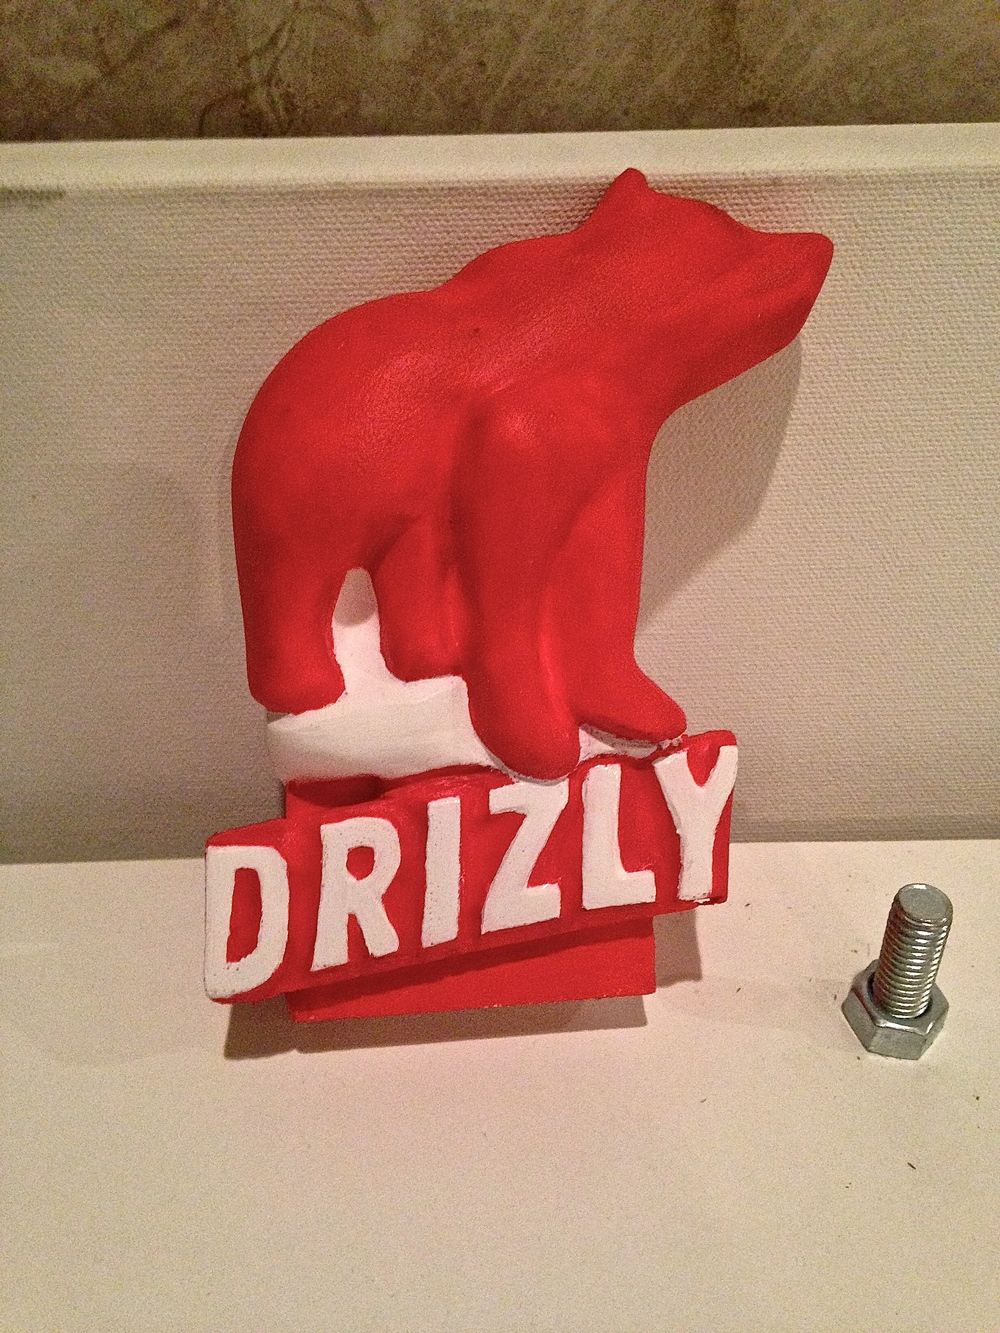 Drizly Tap 1.1.jpg